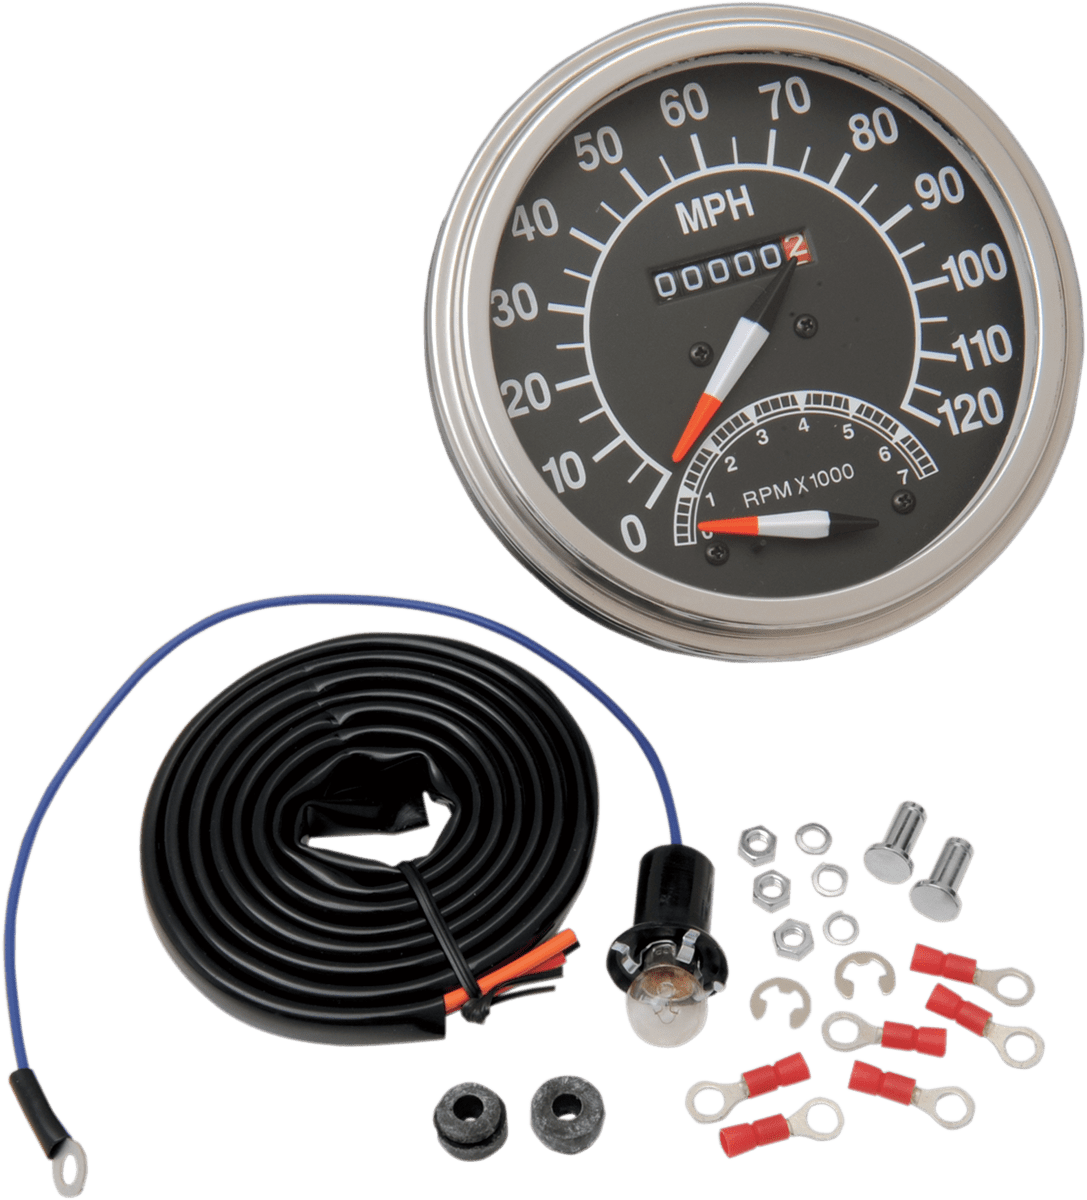 medium resolution of sunpro super tach 2 wiring diagram mopar 1 wiring diagram sourcesunpro super tach 2 wiring diagram